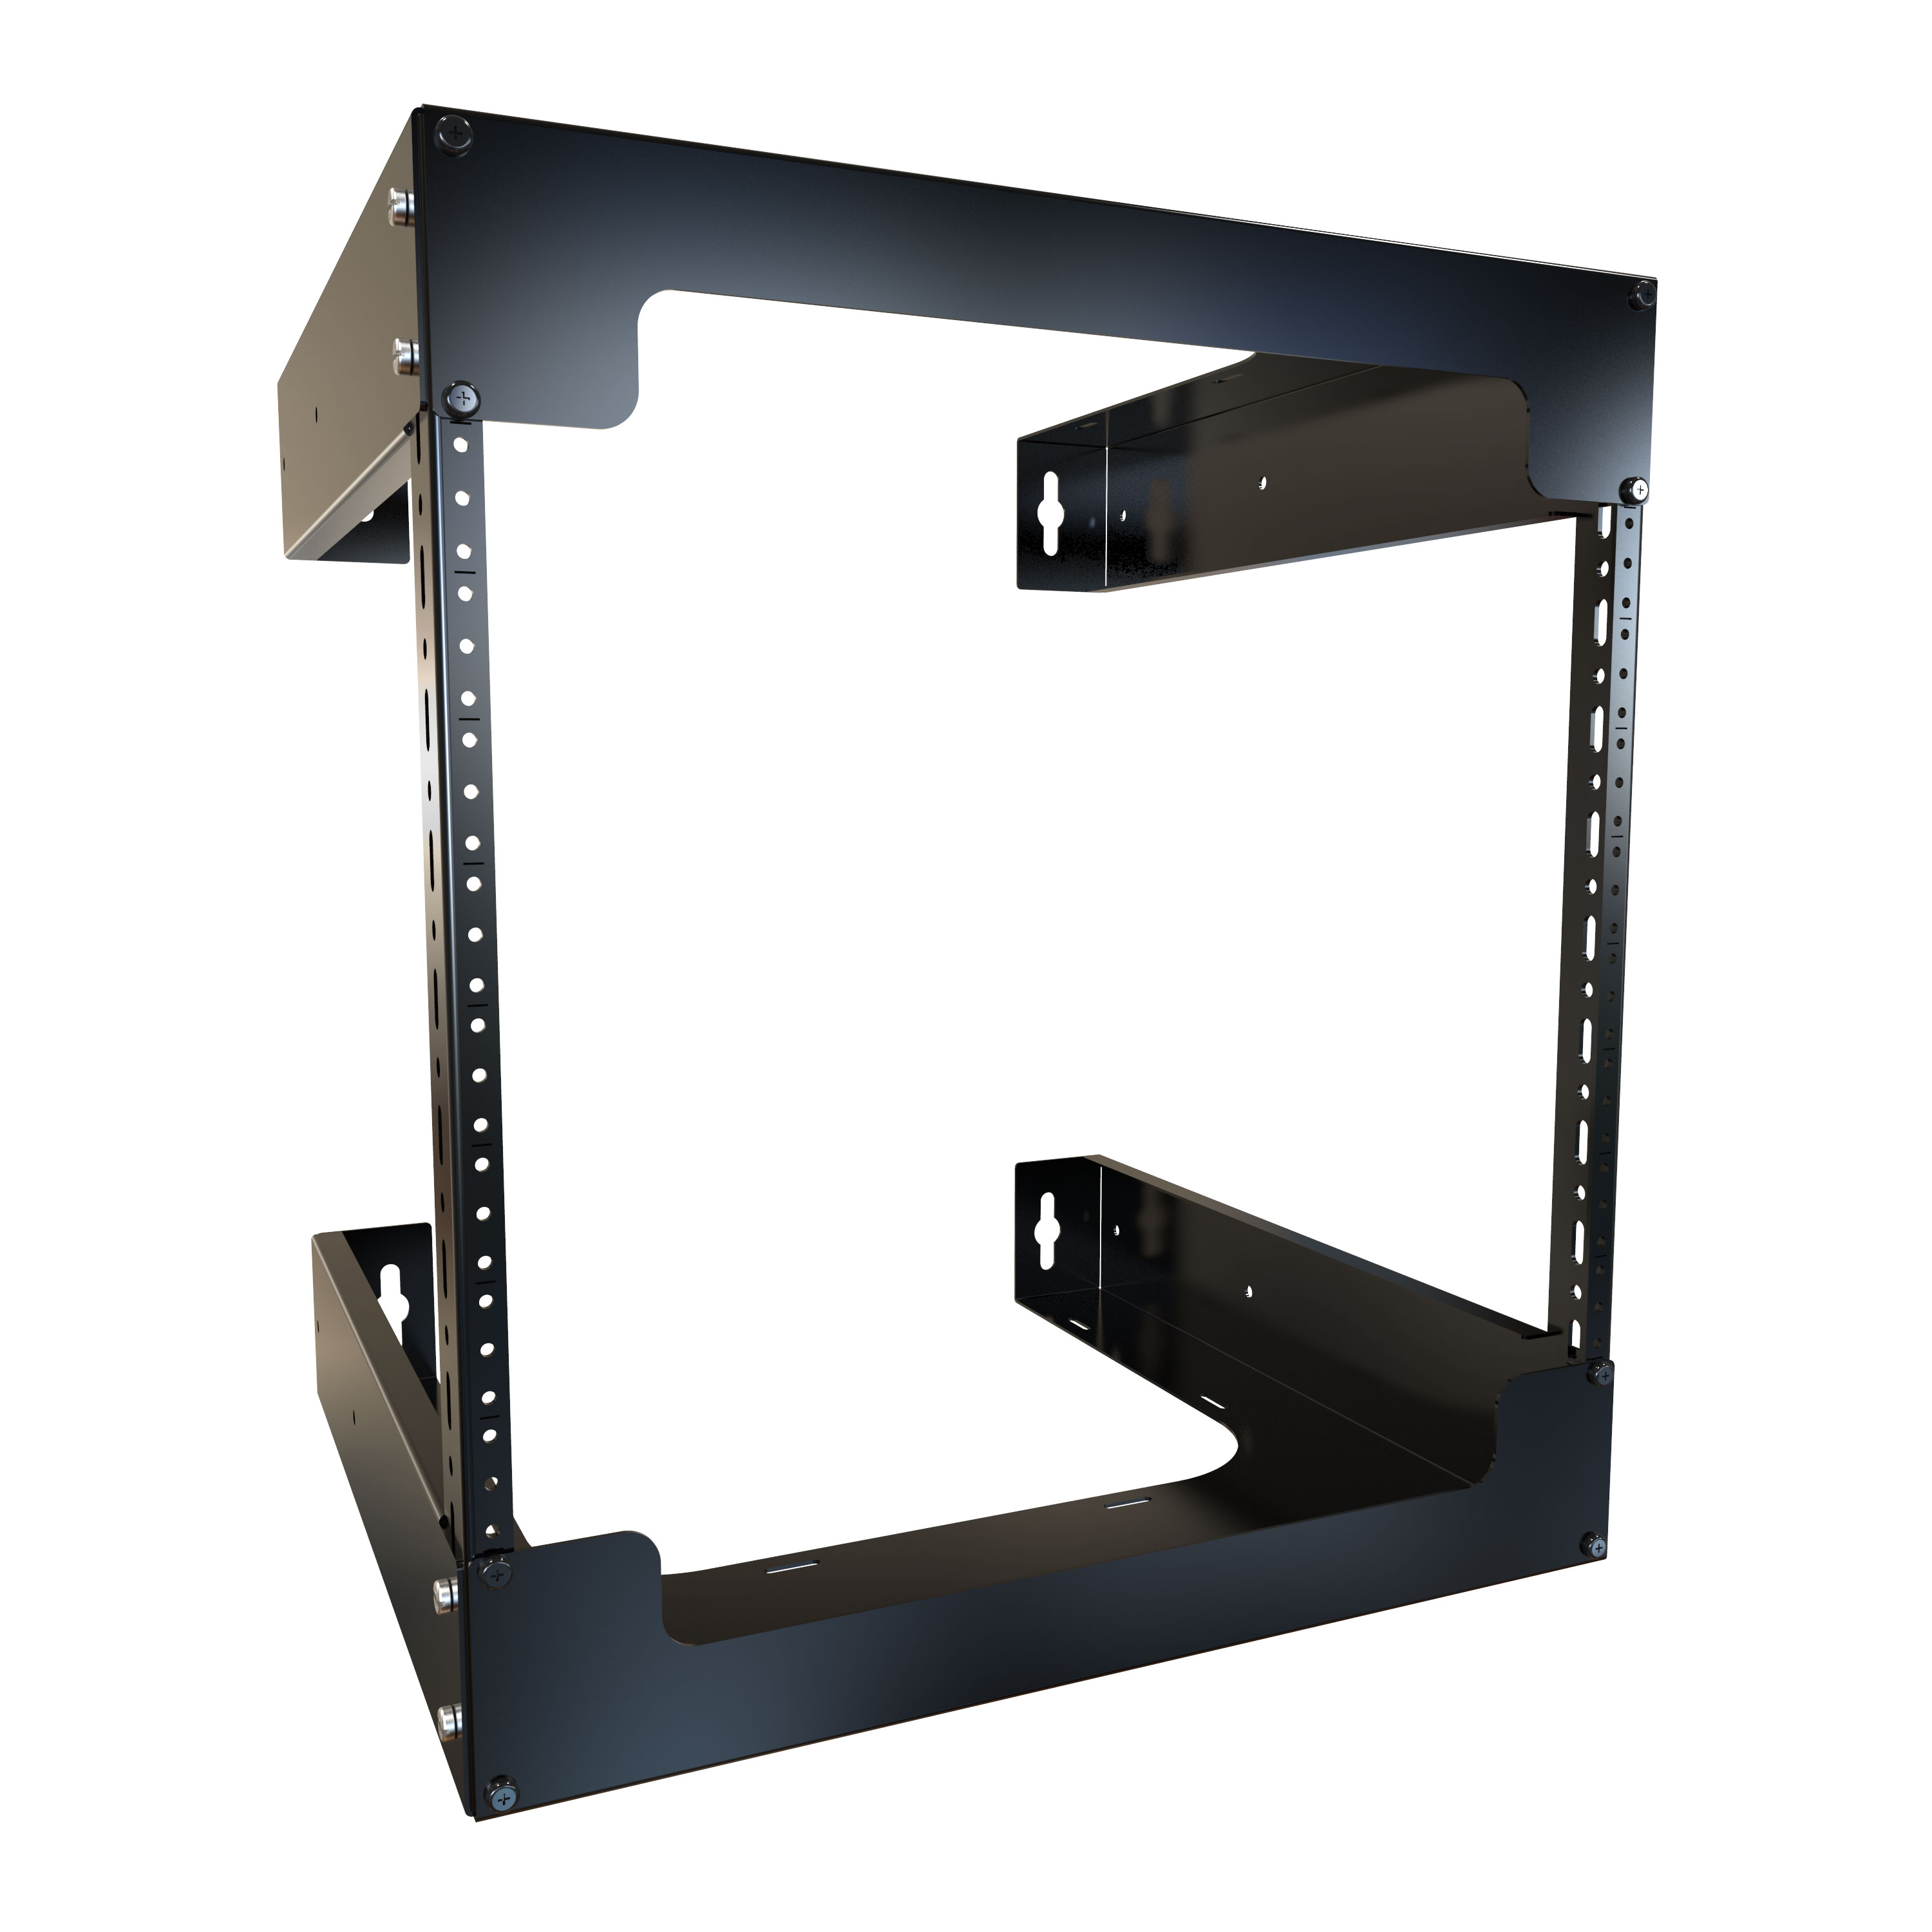 RB-2PW Series Wall Rack - Hammond Manufacturing Rack Systems